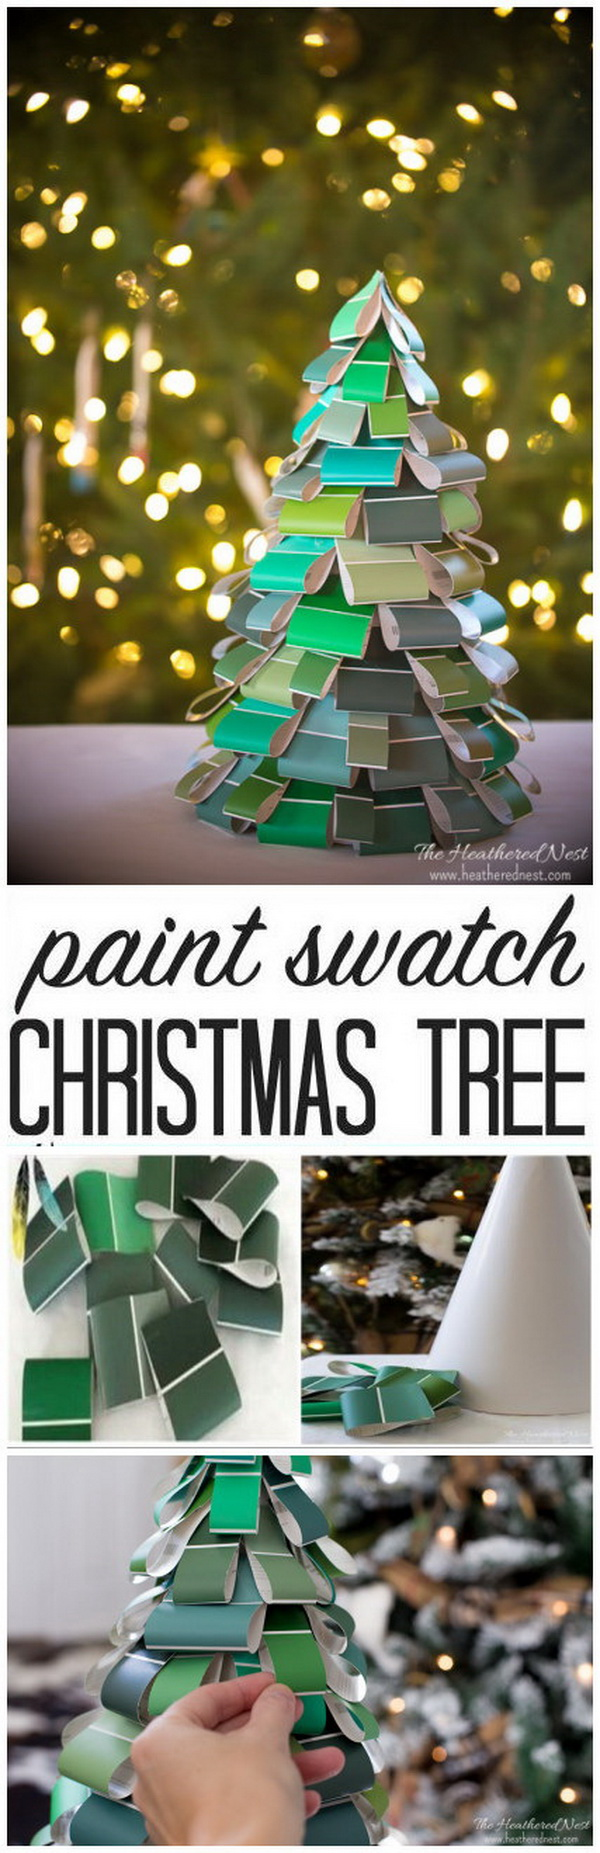 Make your home look festive for less this holiday season with easy DIY dollar store Christmas decor ideas. Wreaths, candles, centerpieces, wall art, ornaments, vases, gifts and more!DIY Christmas Tree Paint Swatch Craft.